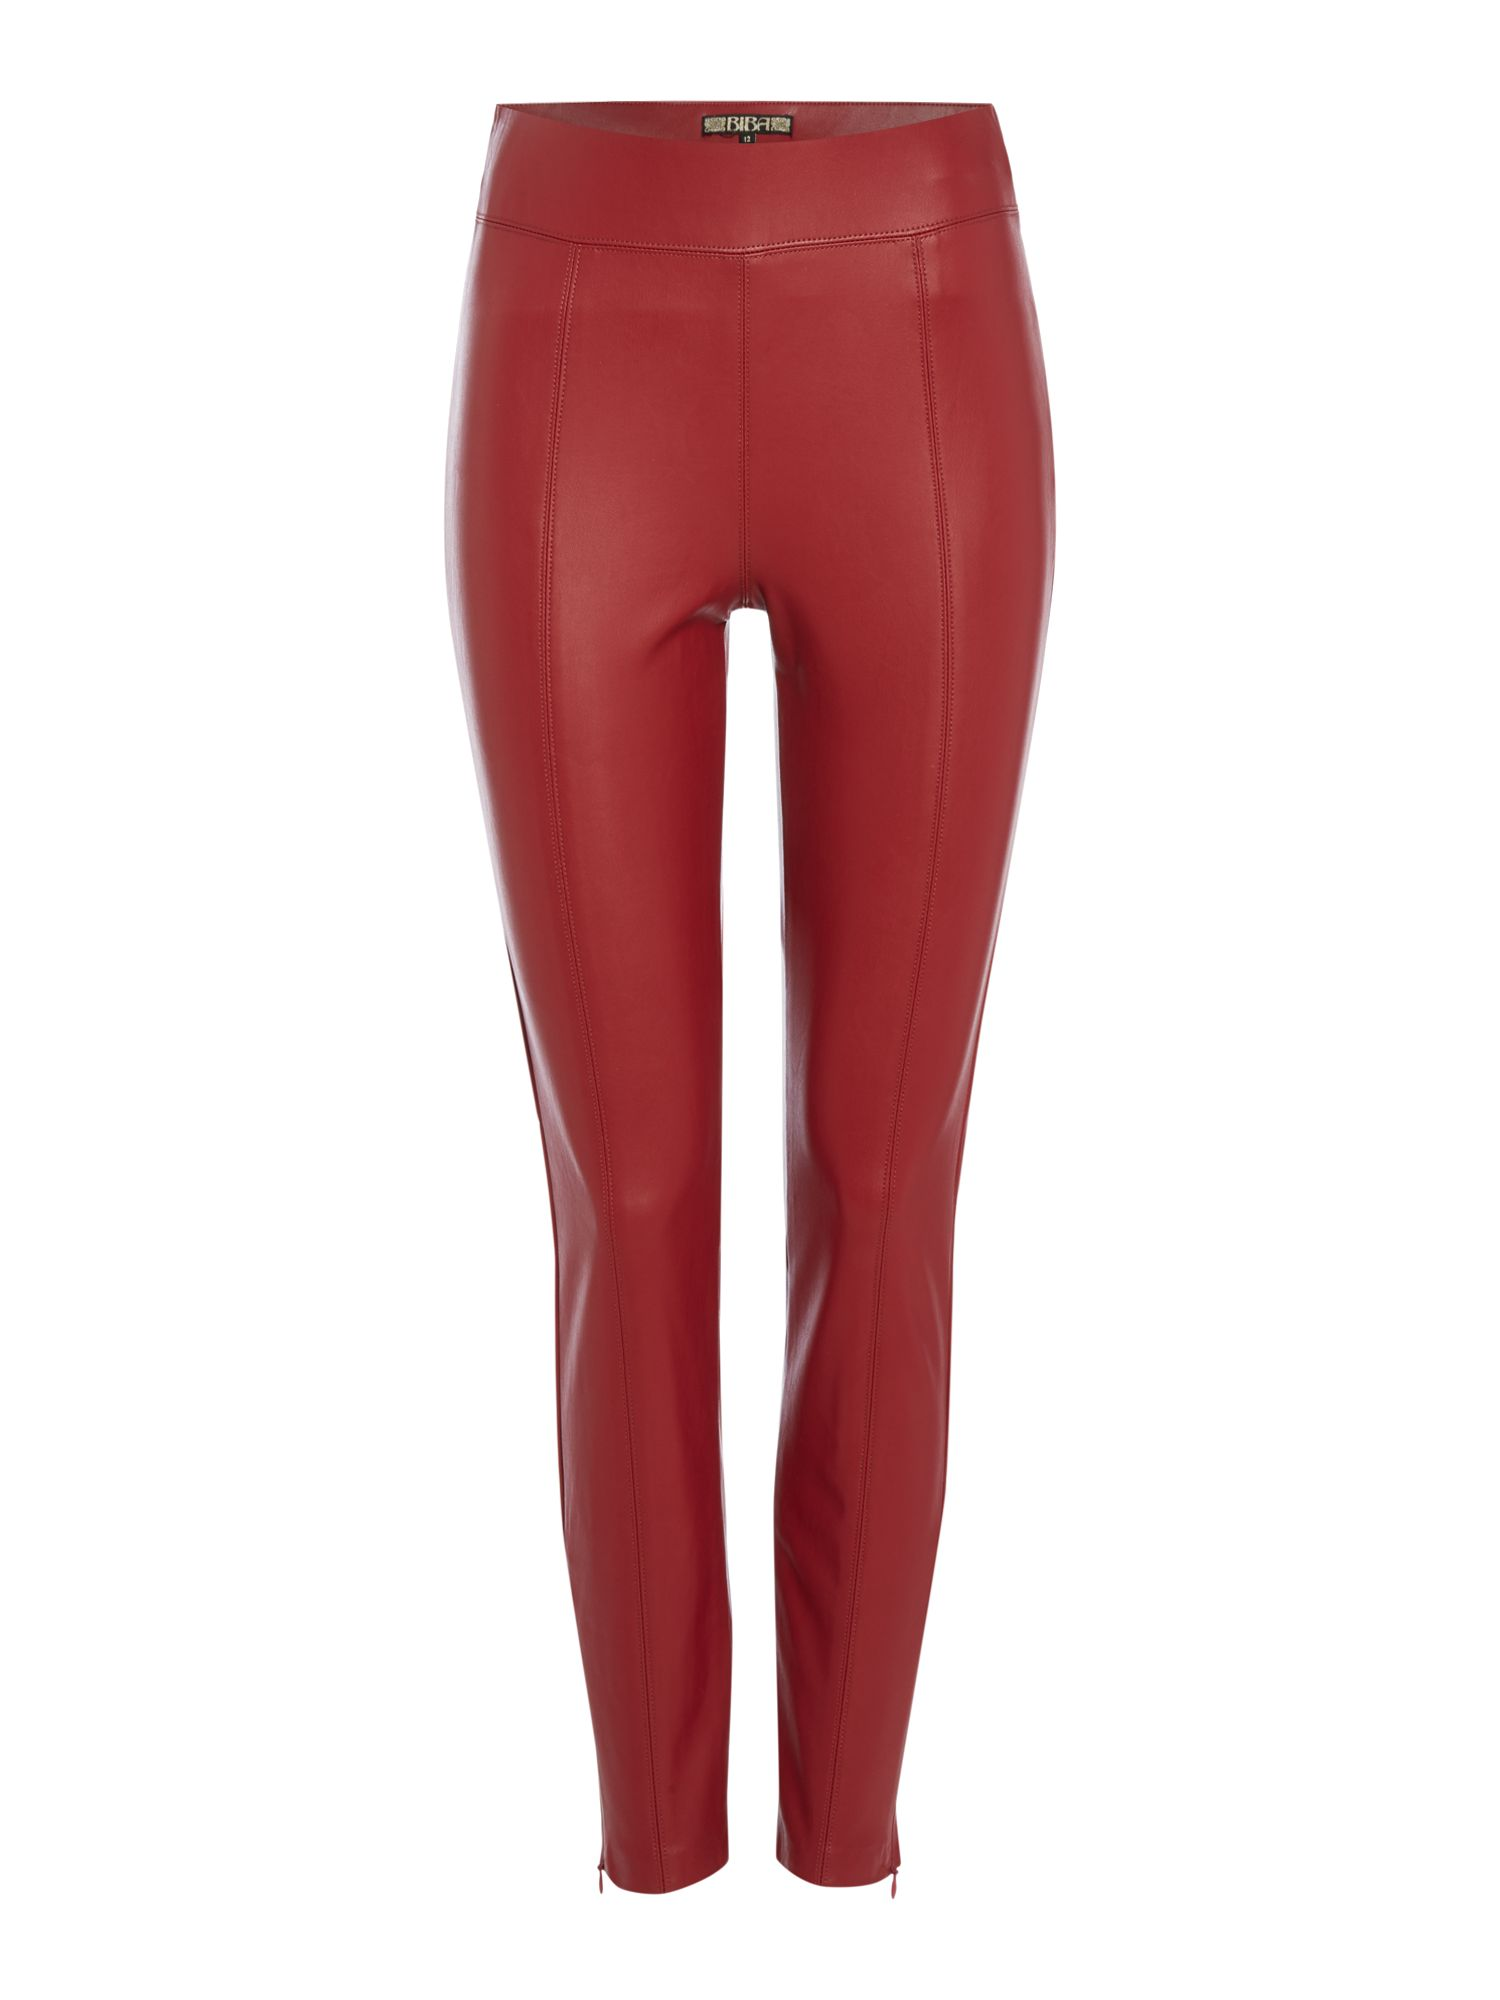 Biba Pu stretch legging, Red